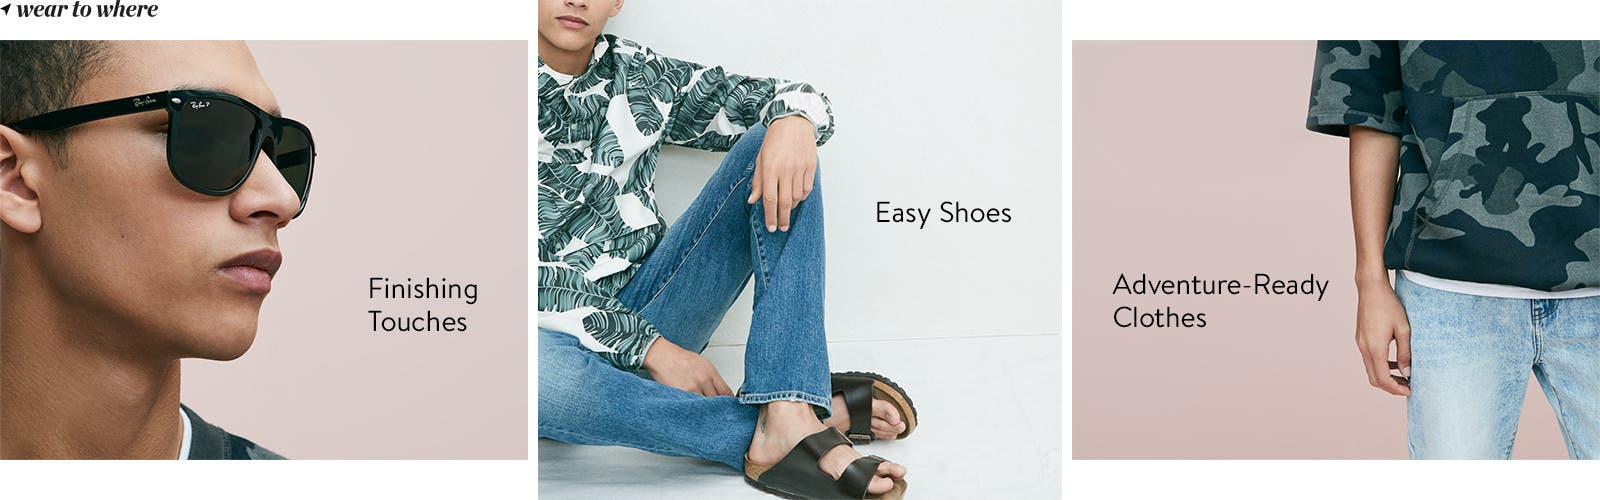 Vacation clothes, shoes and accessories for men.